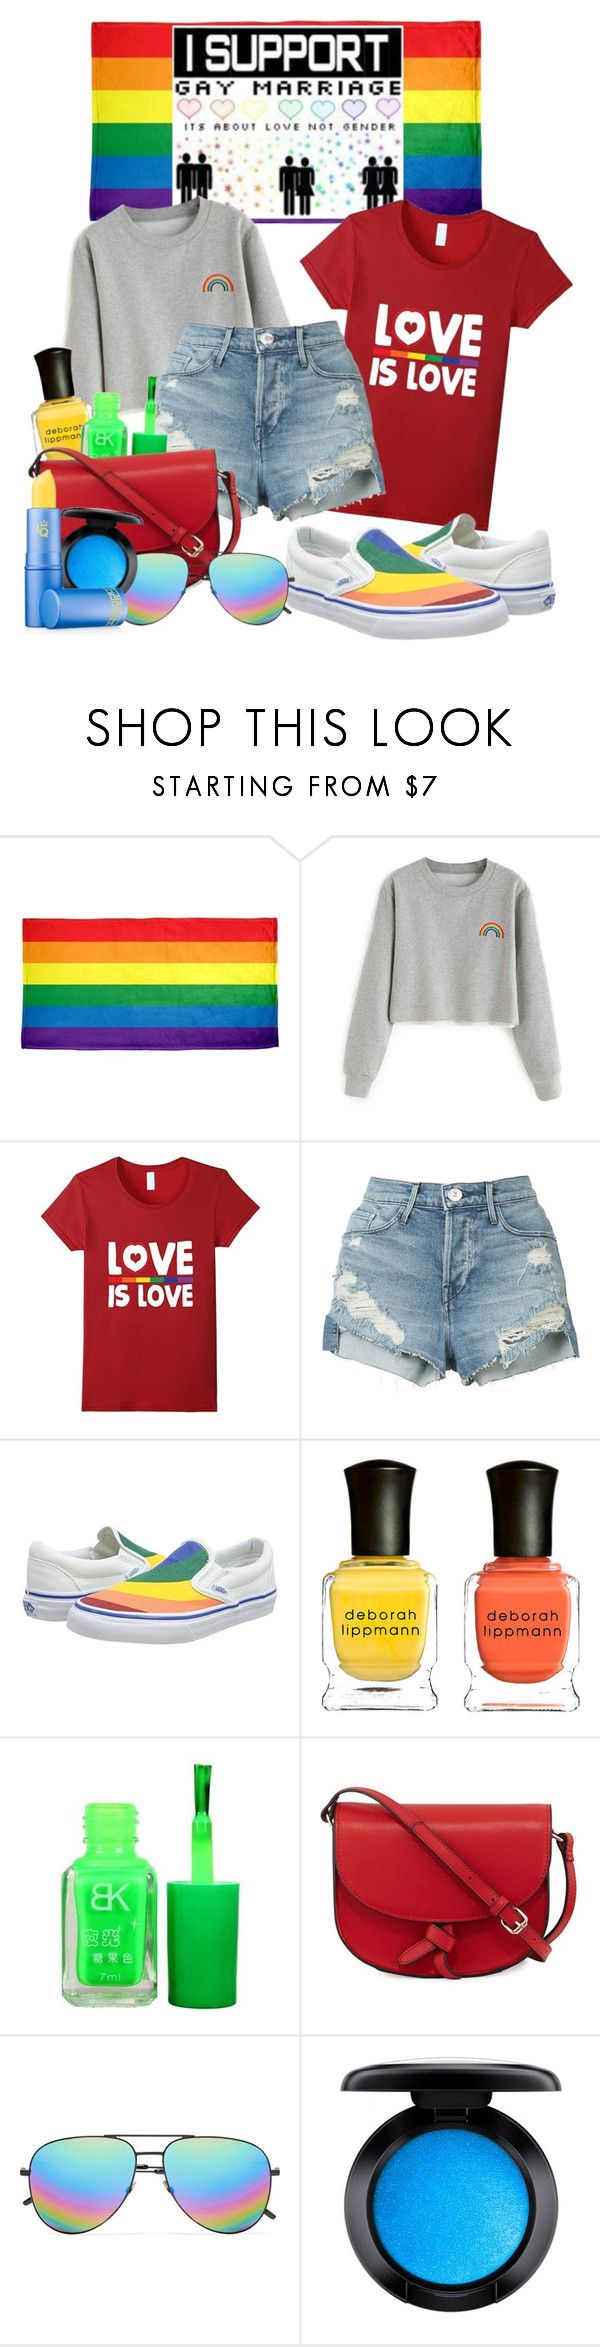 """""""Gay pride & neon beauty"""" by fashion-film-fun ❤ liked on Polyvore featuring 3x1, Vans, Deborah Lippmann, KC Jagger, Yves Saint Laurent, MAC Cosmetics, Lipstick Queen and pride"""